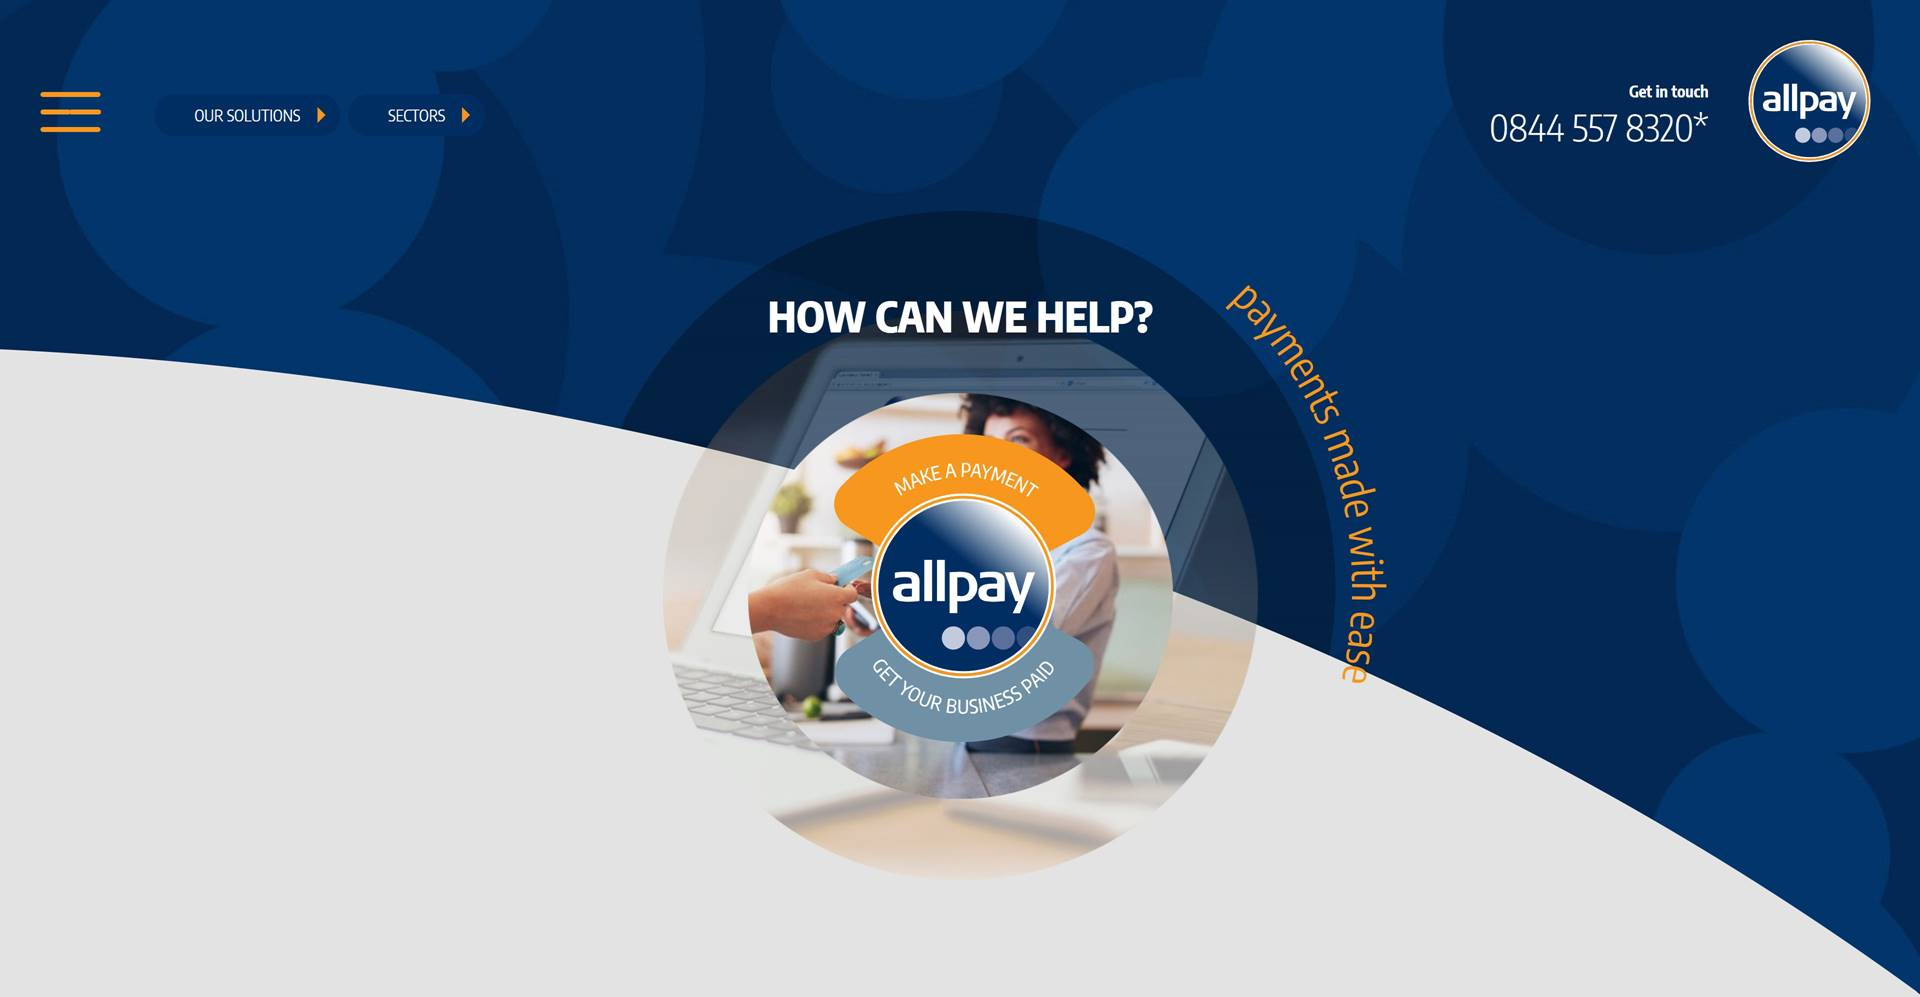 Frontend & Umbraco development of Allpay.net a responsive website built by Hussein Khraibani - Hero section